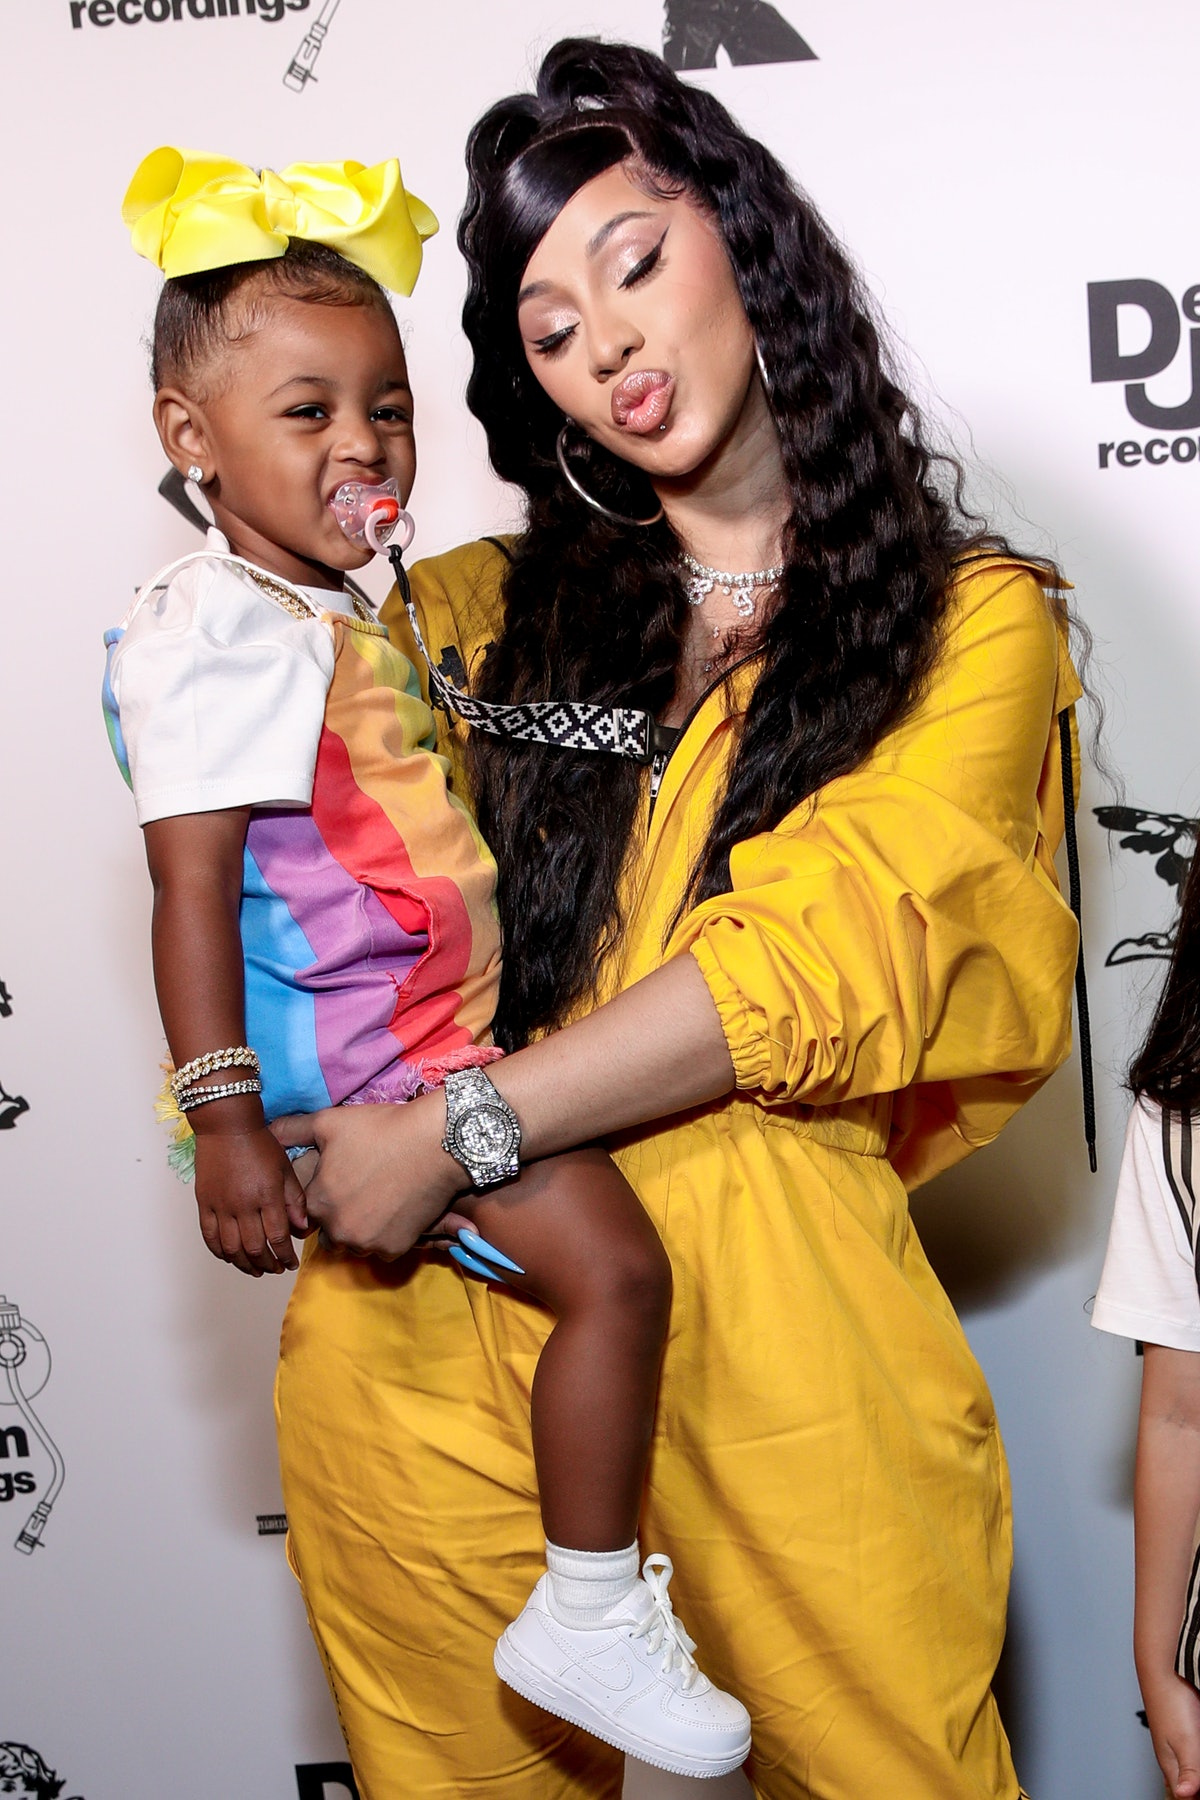 Cardi B and daughter Kulture attend an event for Def Jam records.